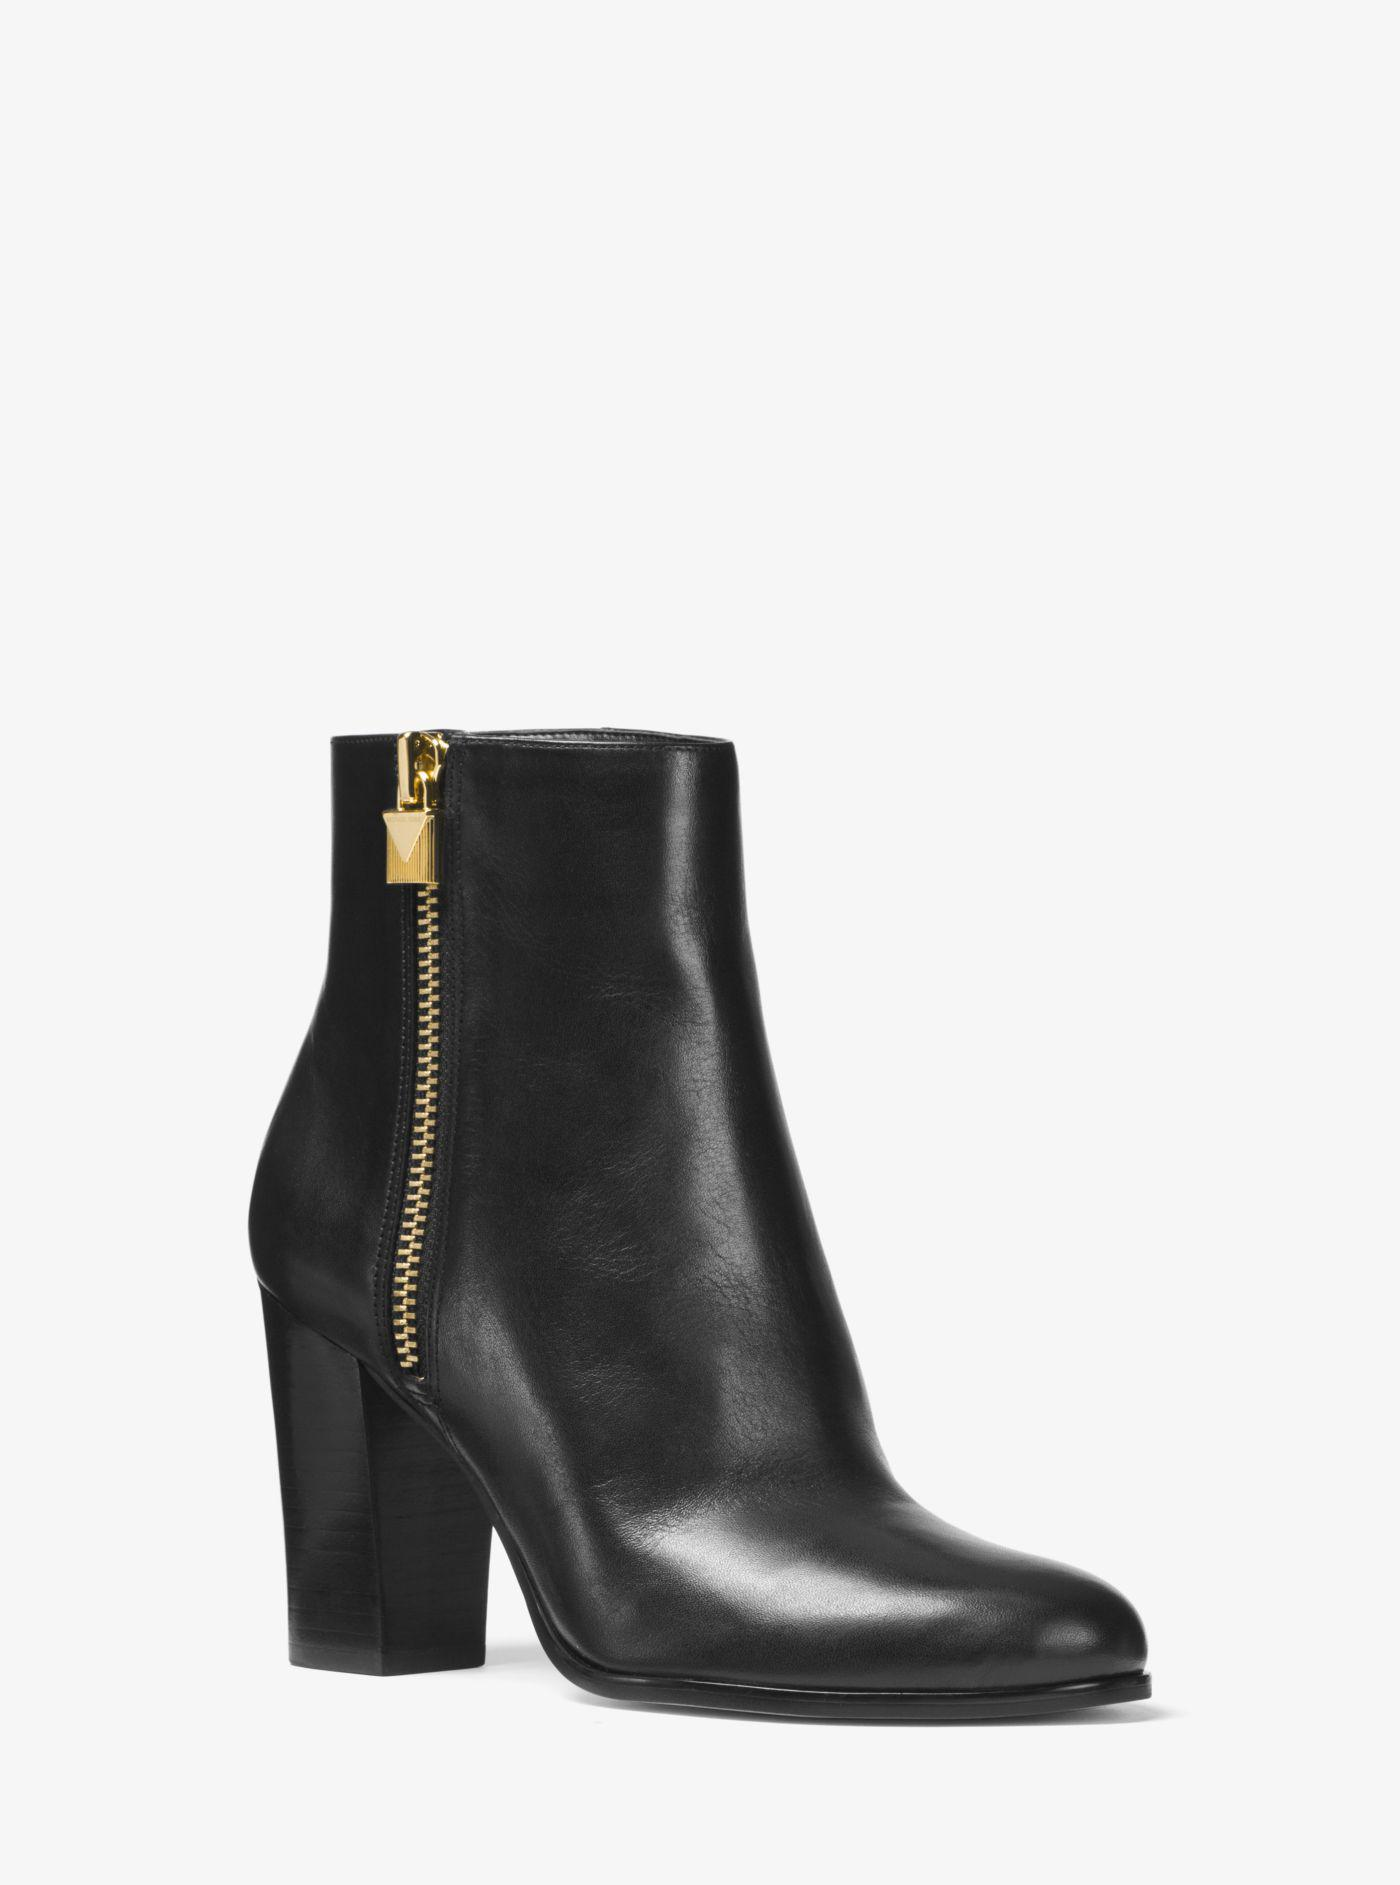 Michael Kors. Women's Black Margaret Leather Ankle Boot